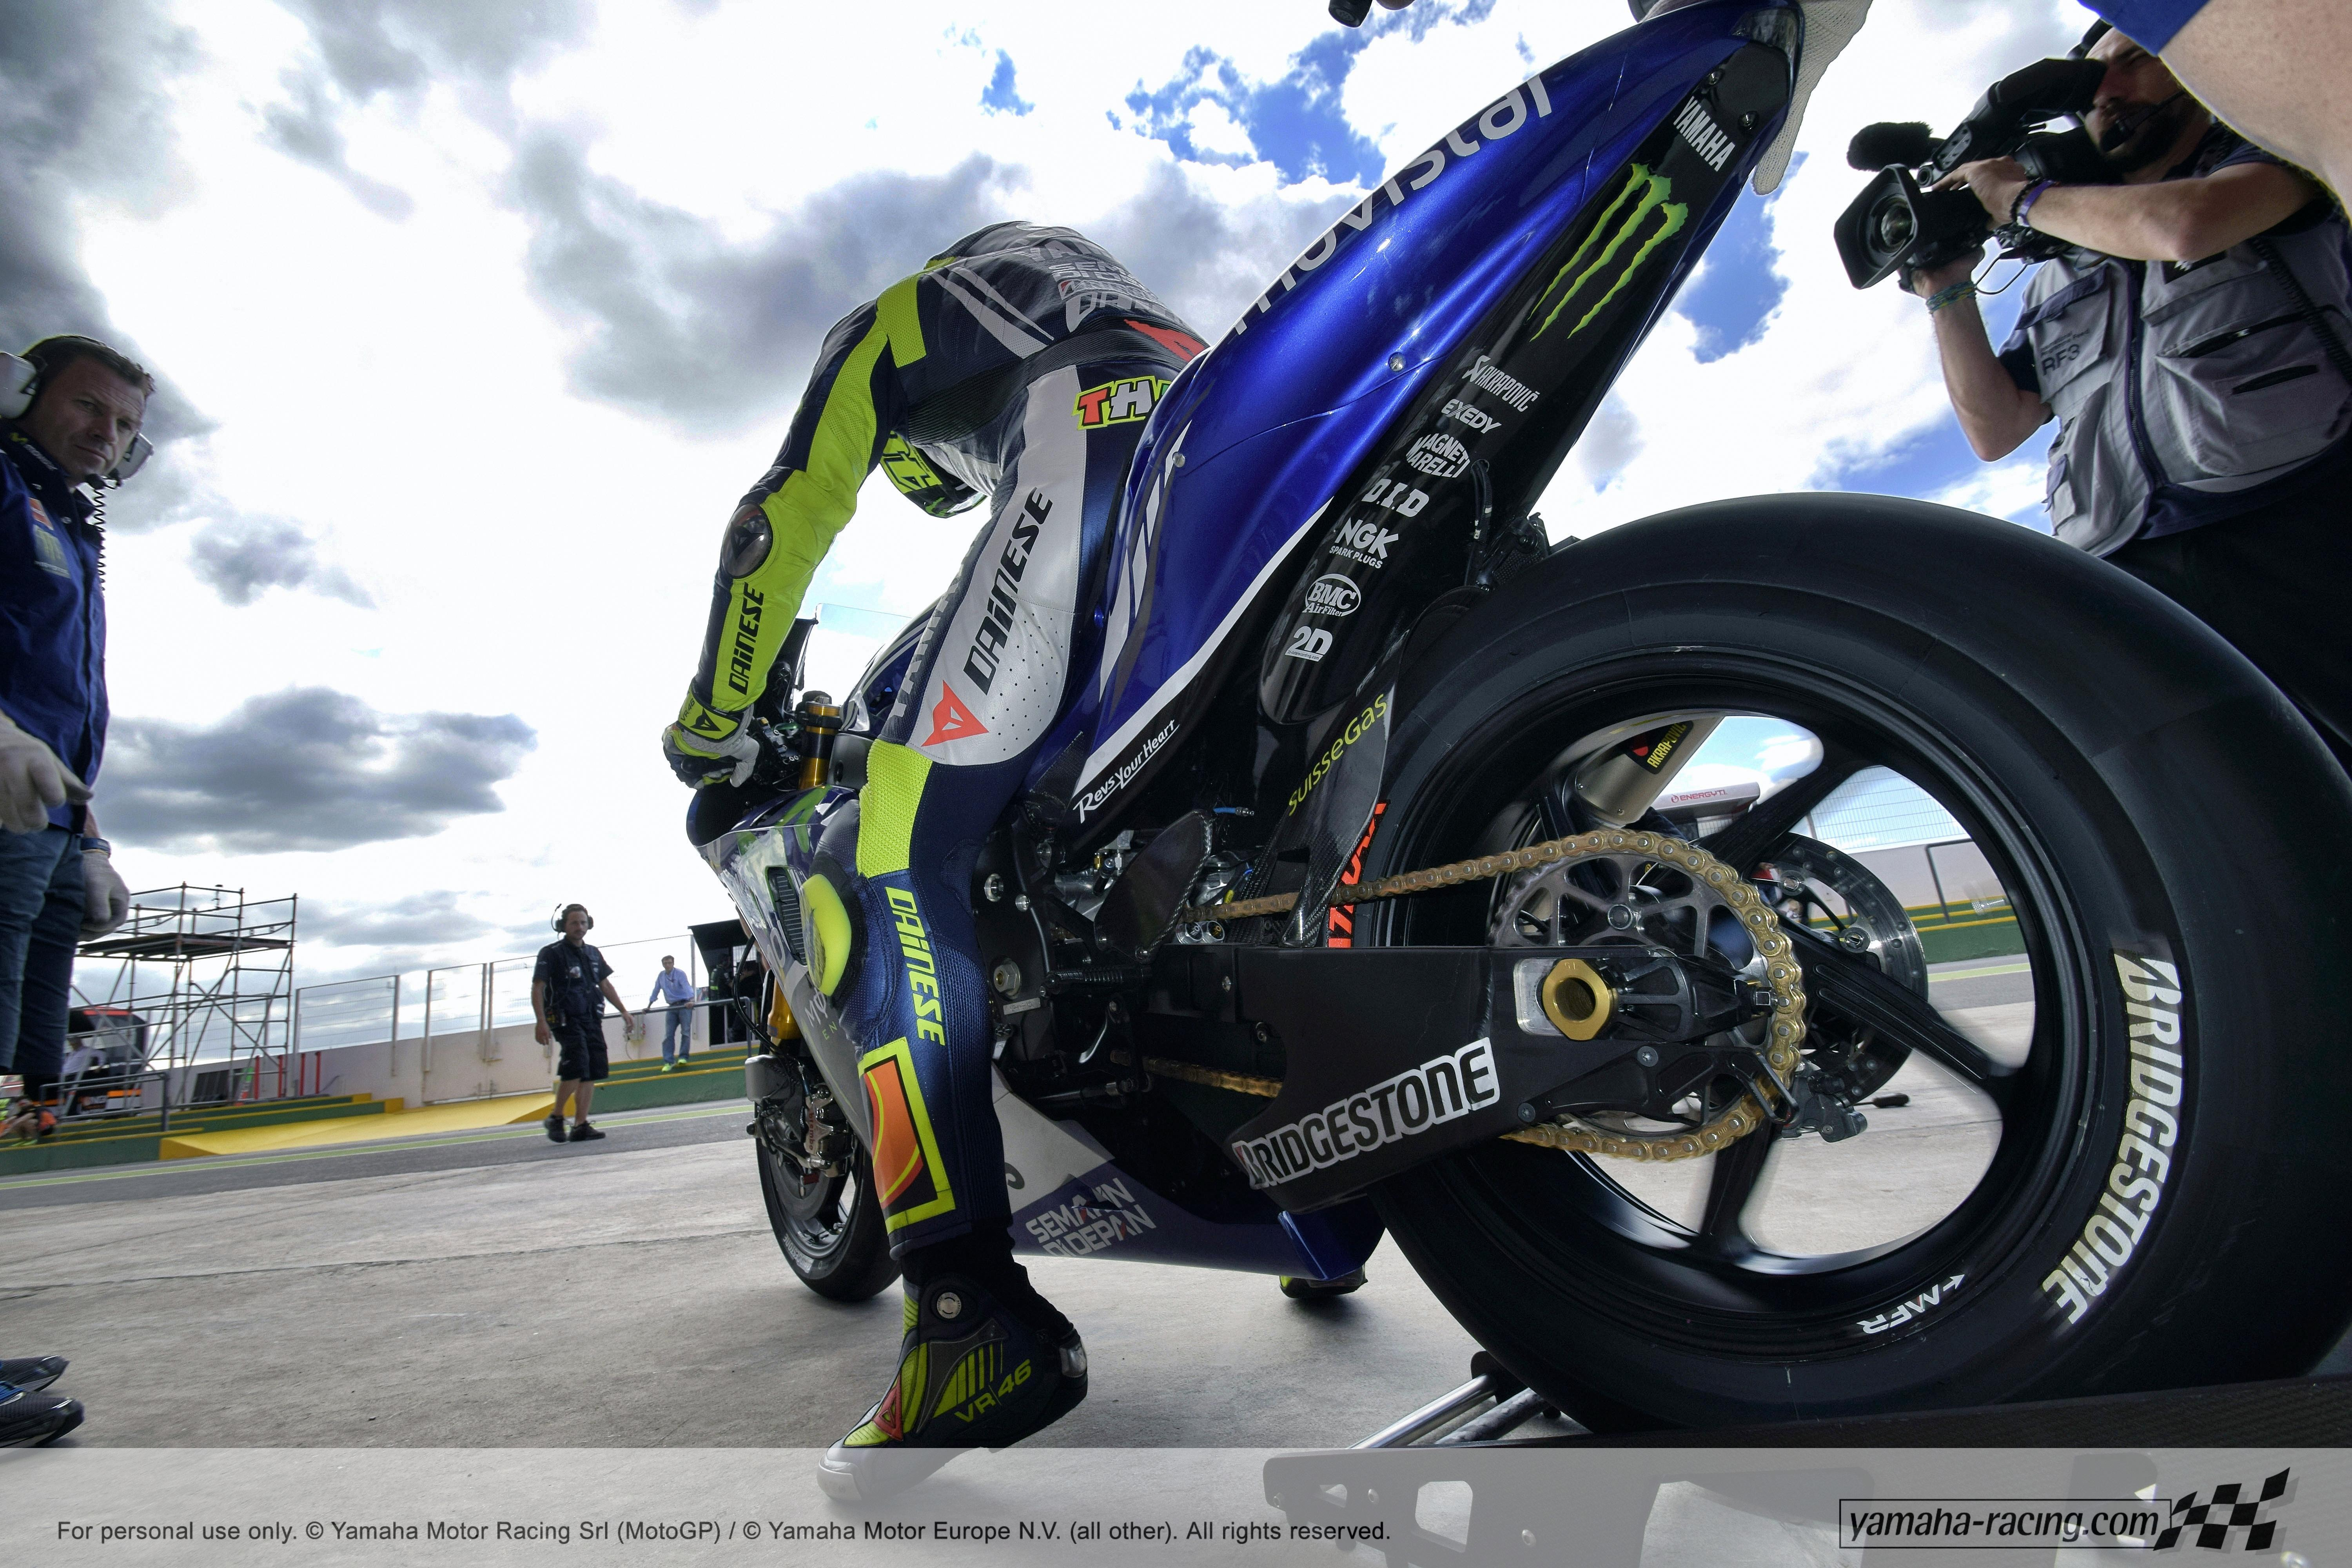 Valentino Rossi on a sports motorcycle wallpapers and image